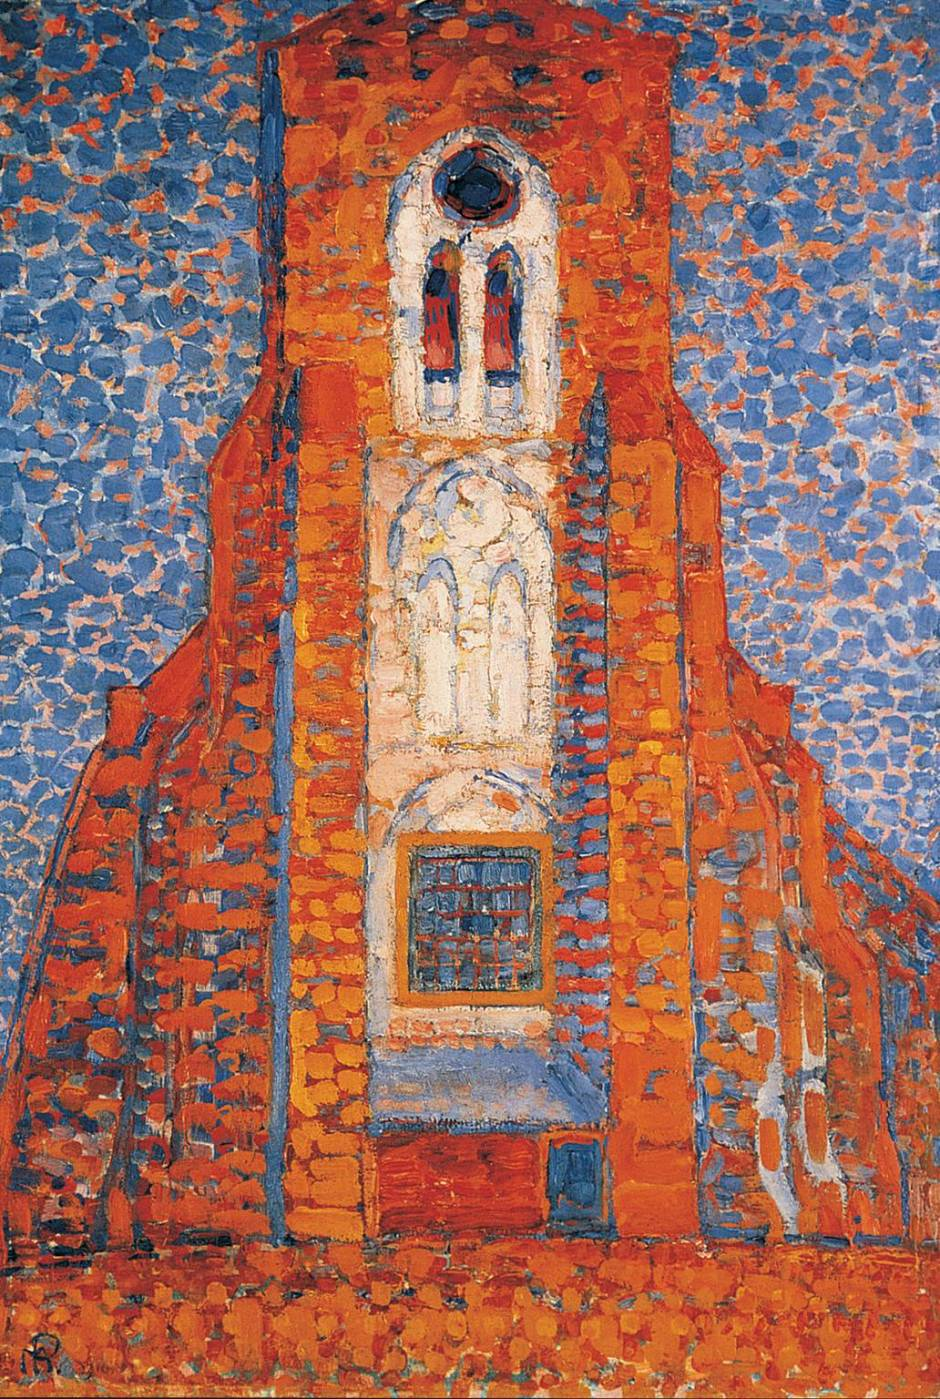 Sun, Church in Zeeland; Zoutelande Church Facade 1909-10 by Piet Mondrian 1872-1944